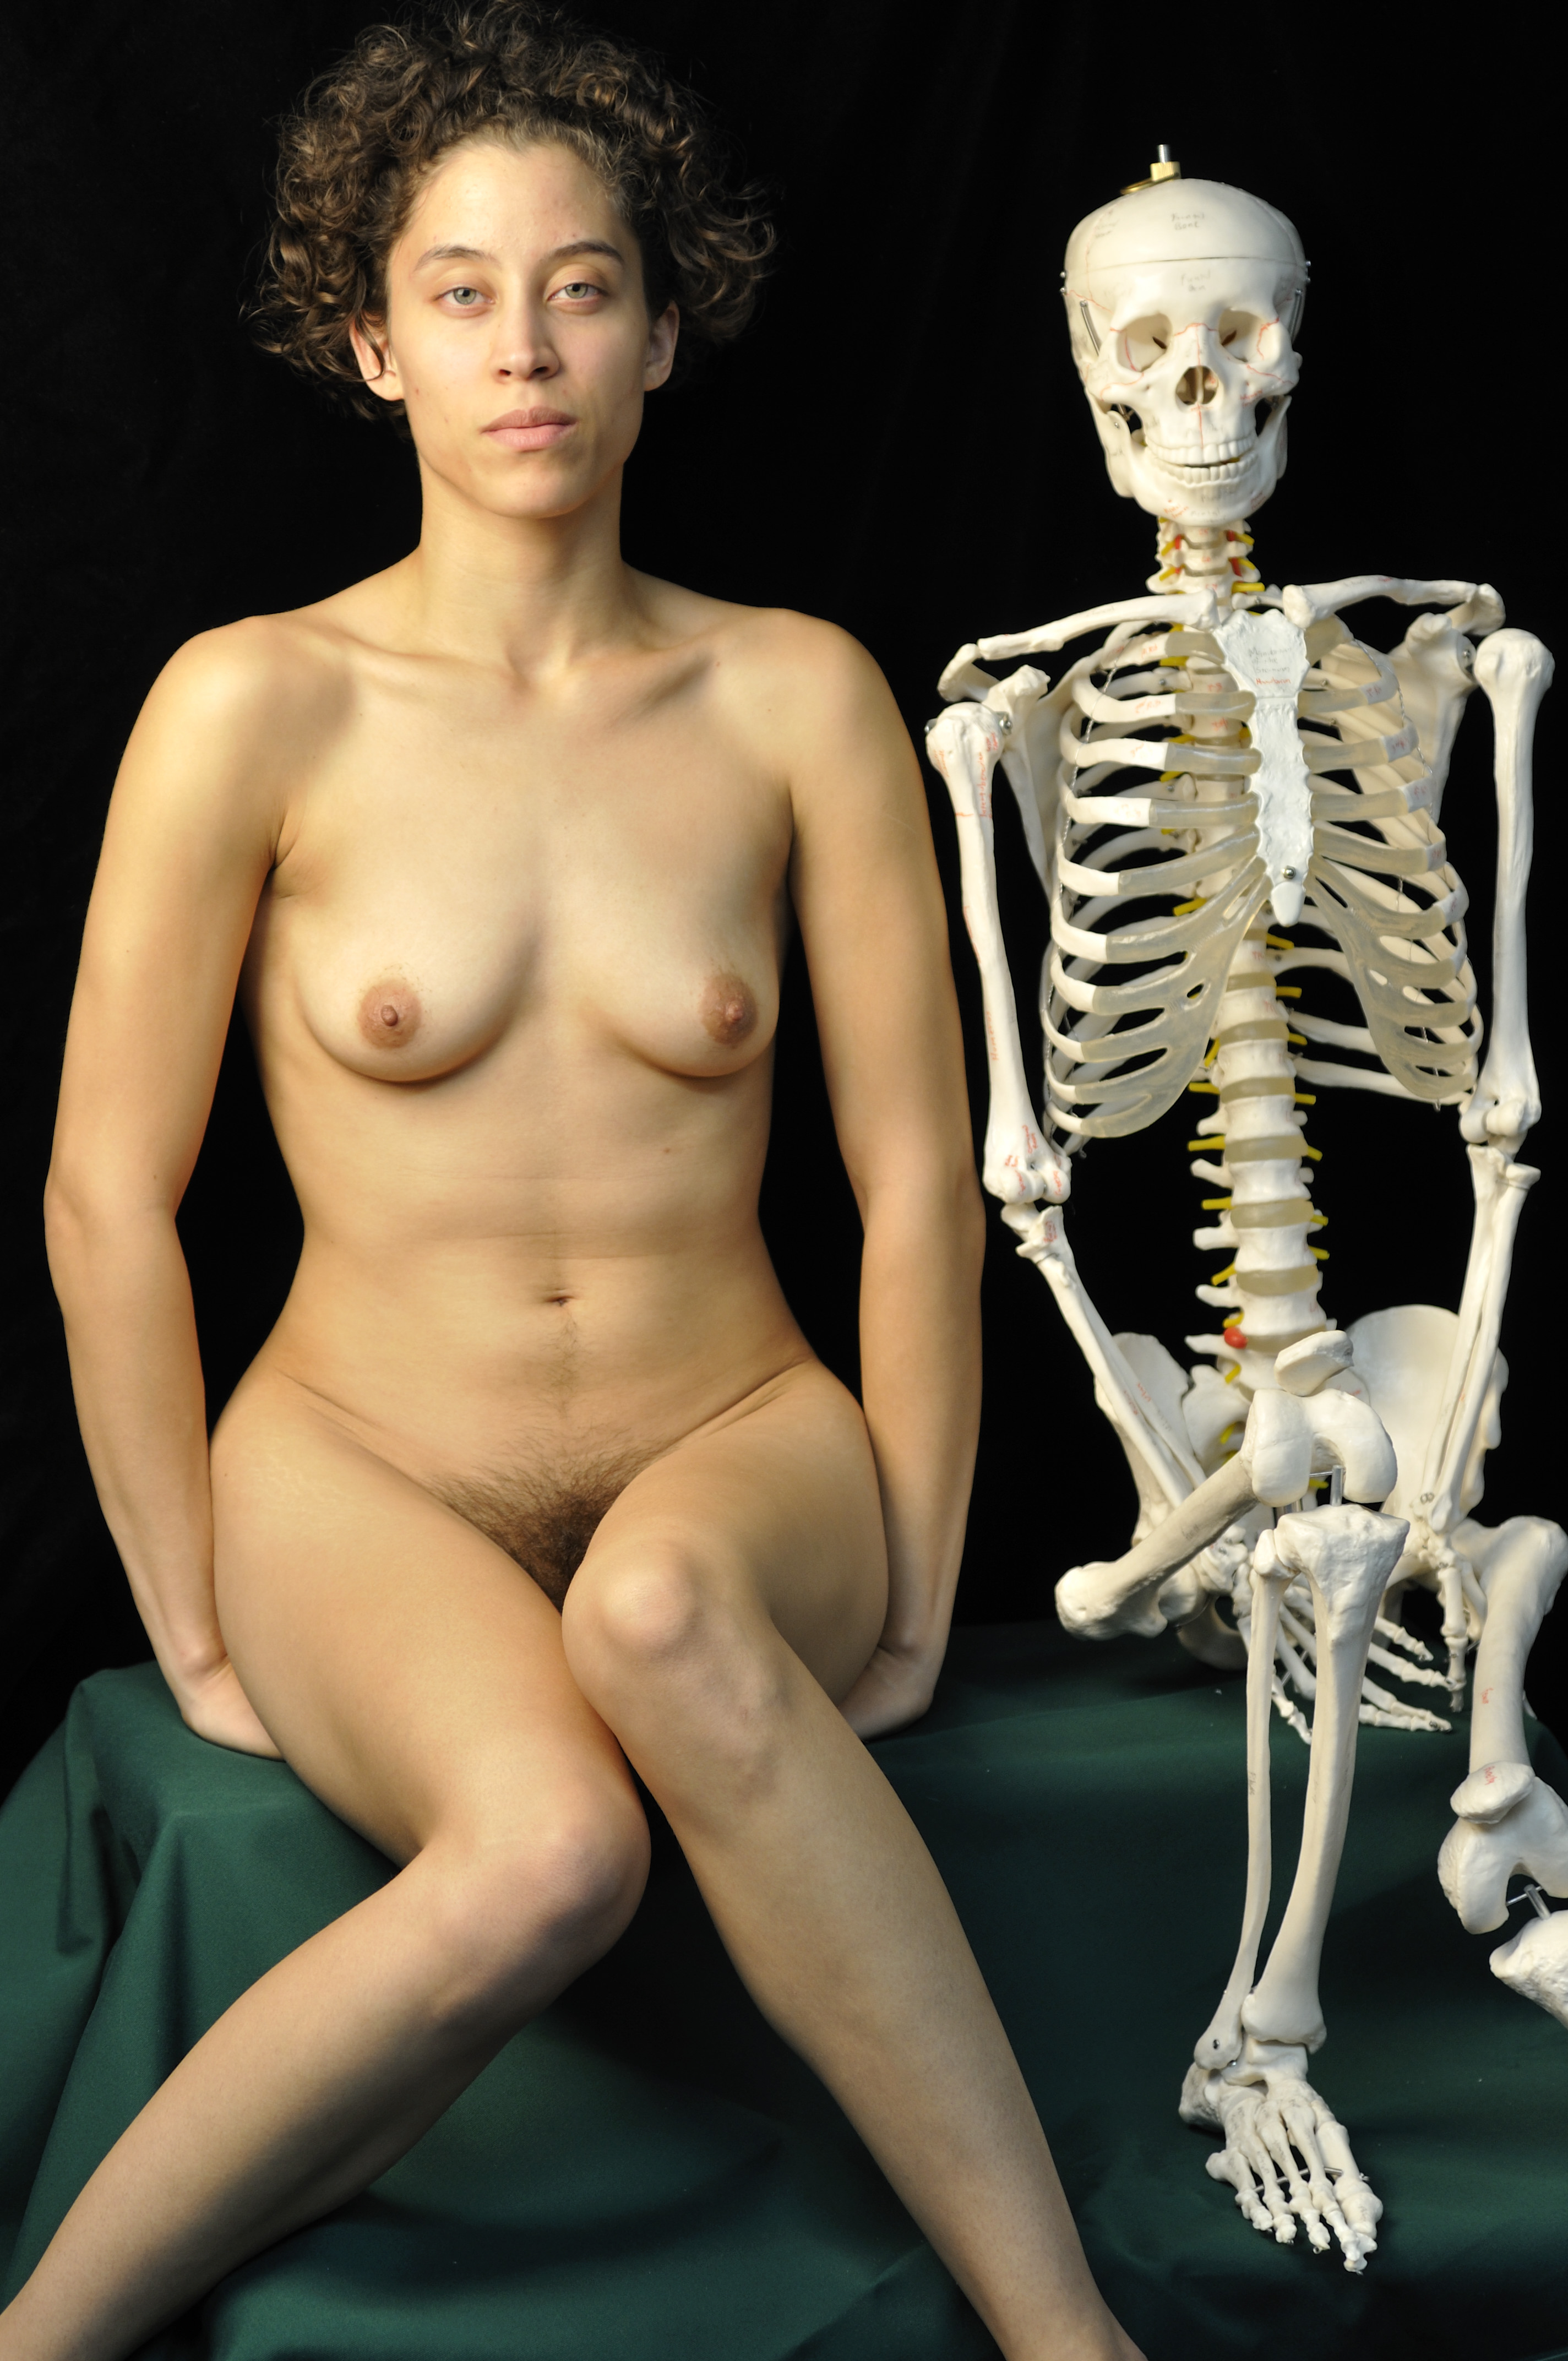 Something Skeleton with naked girl pics opinion you